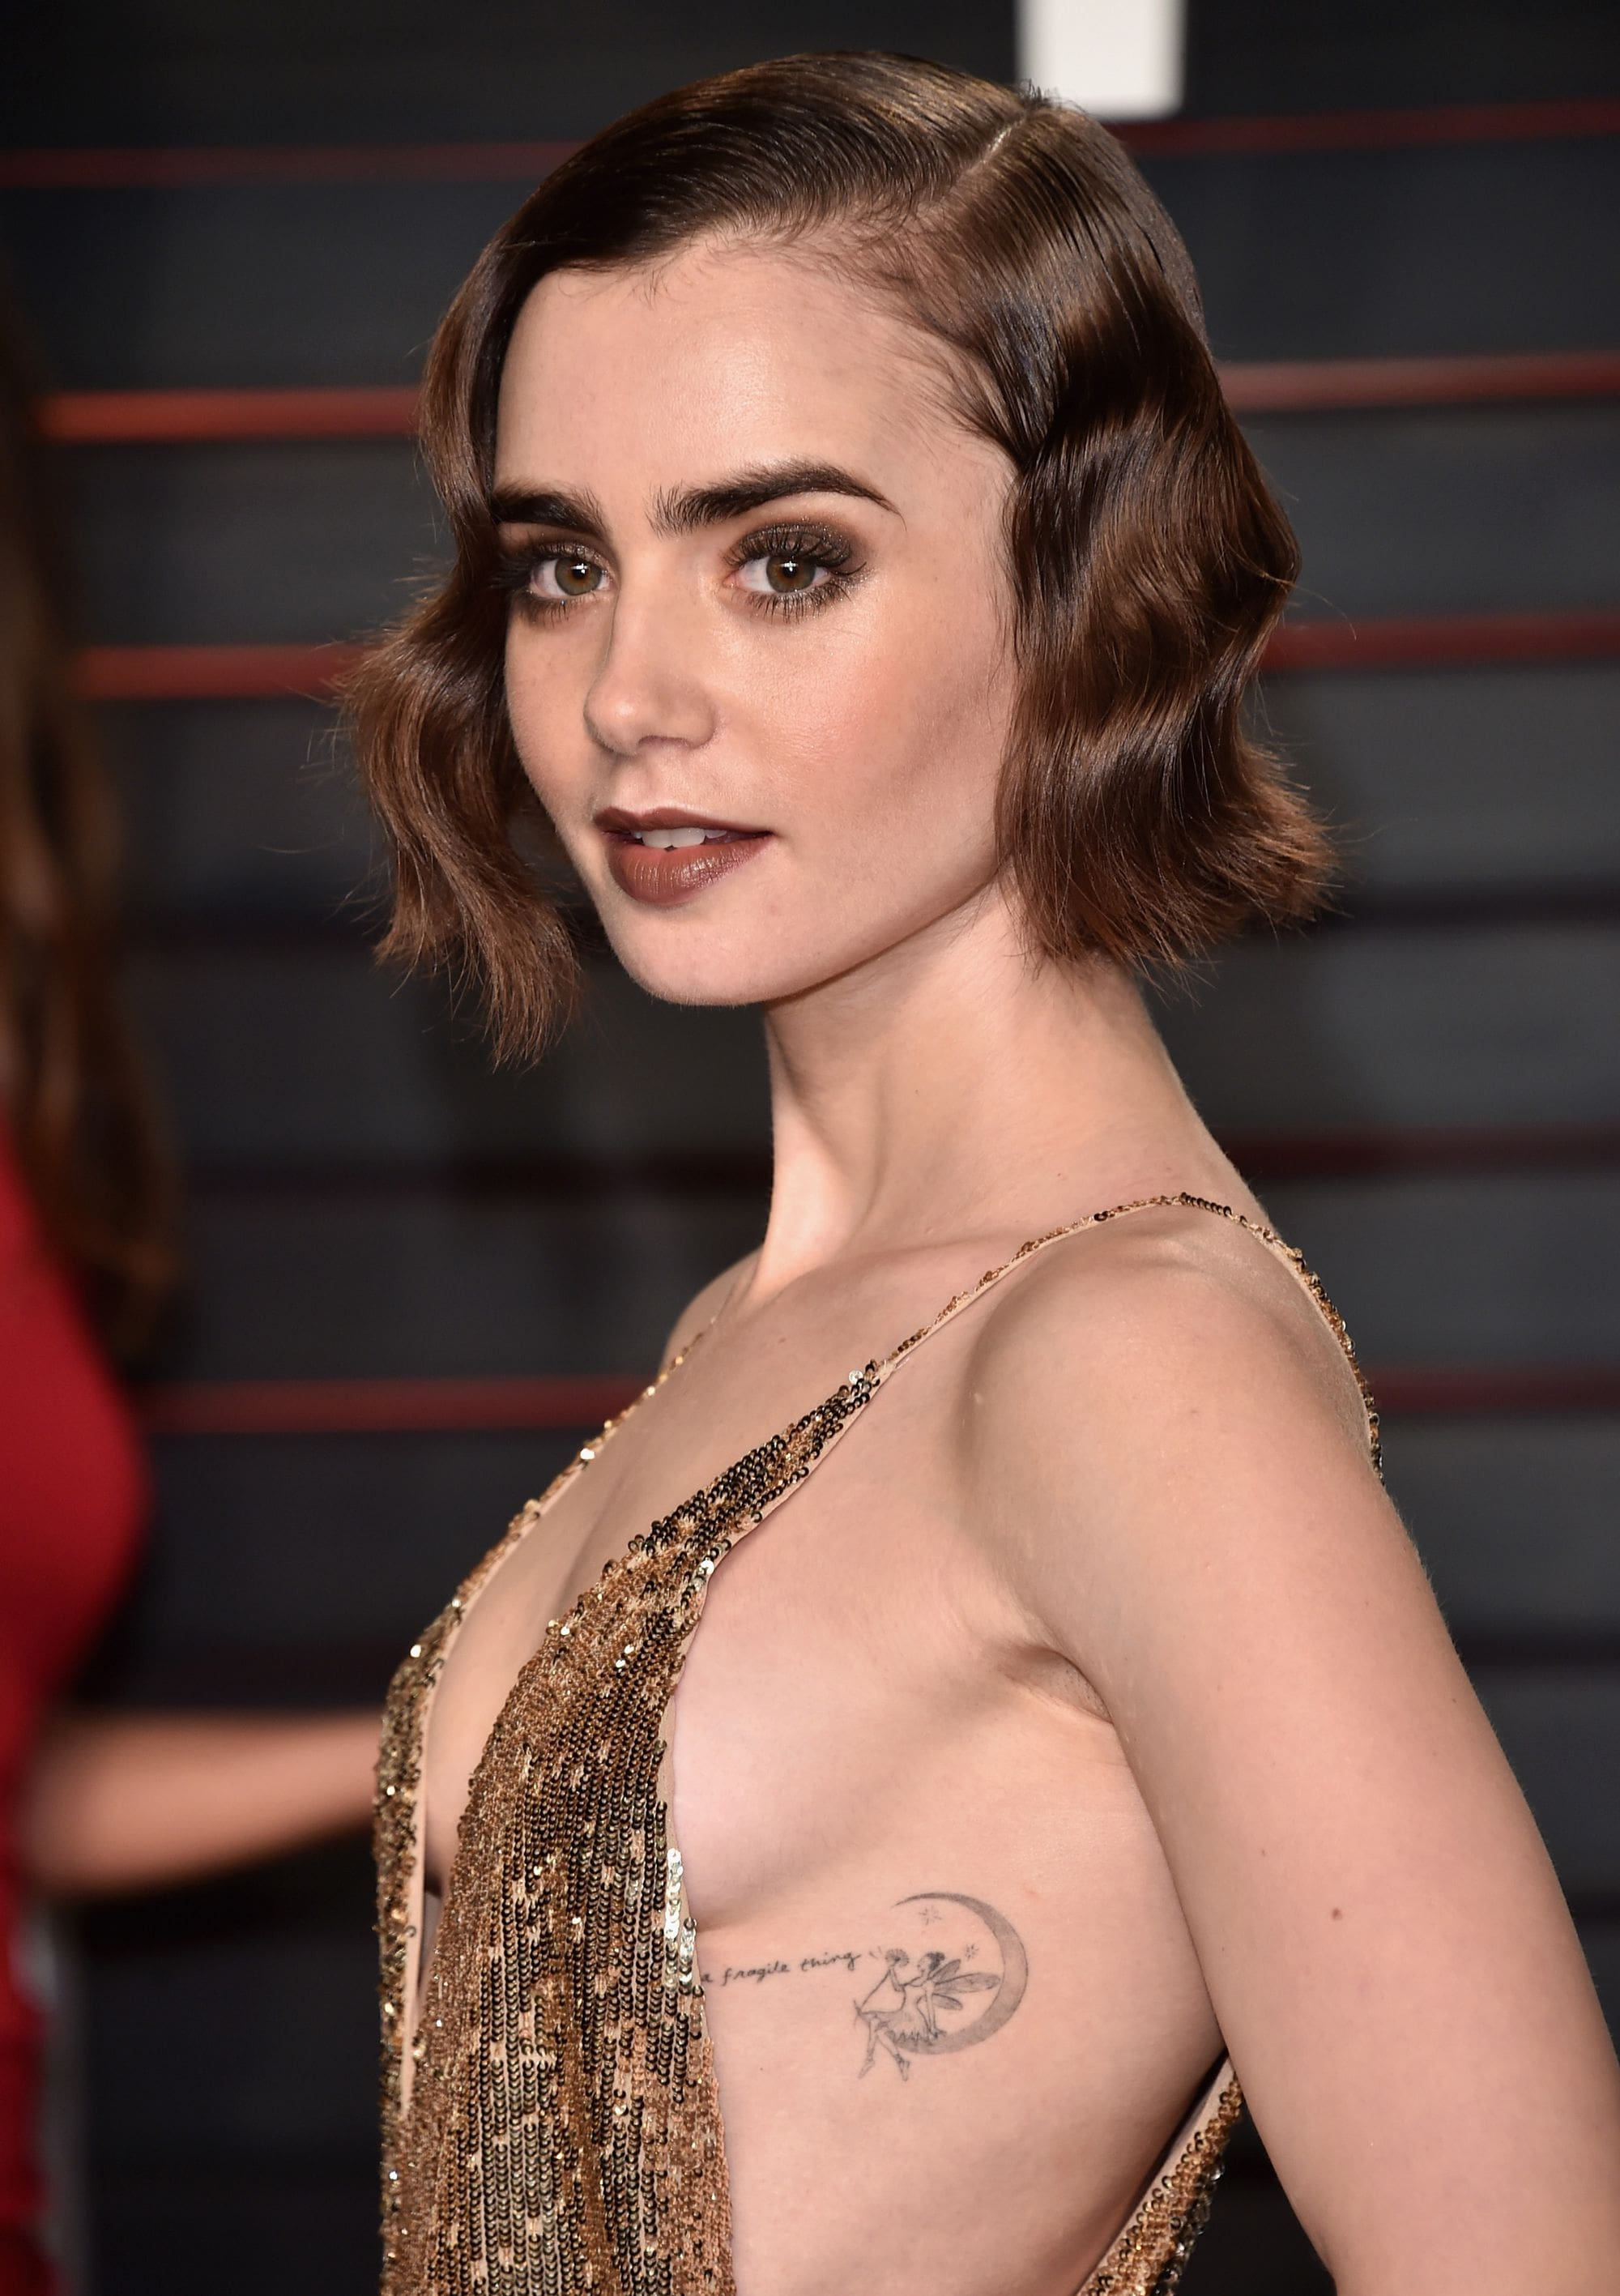 Lily Collins side boobs